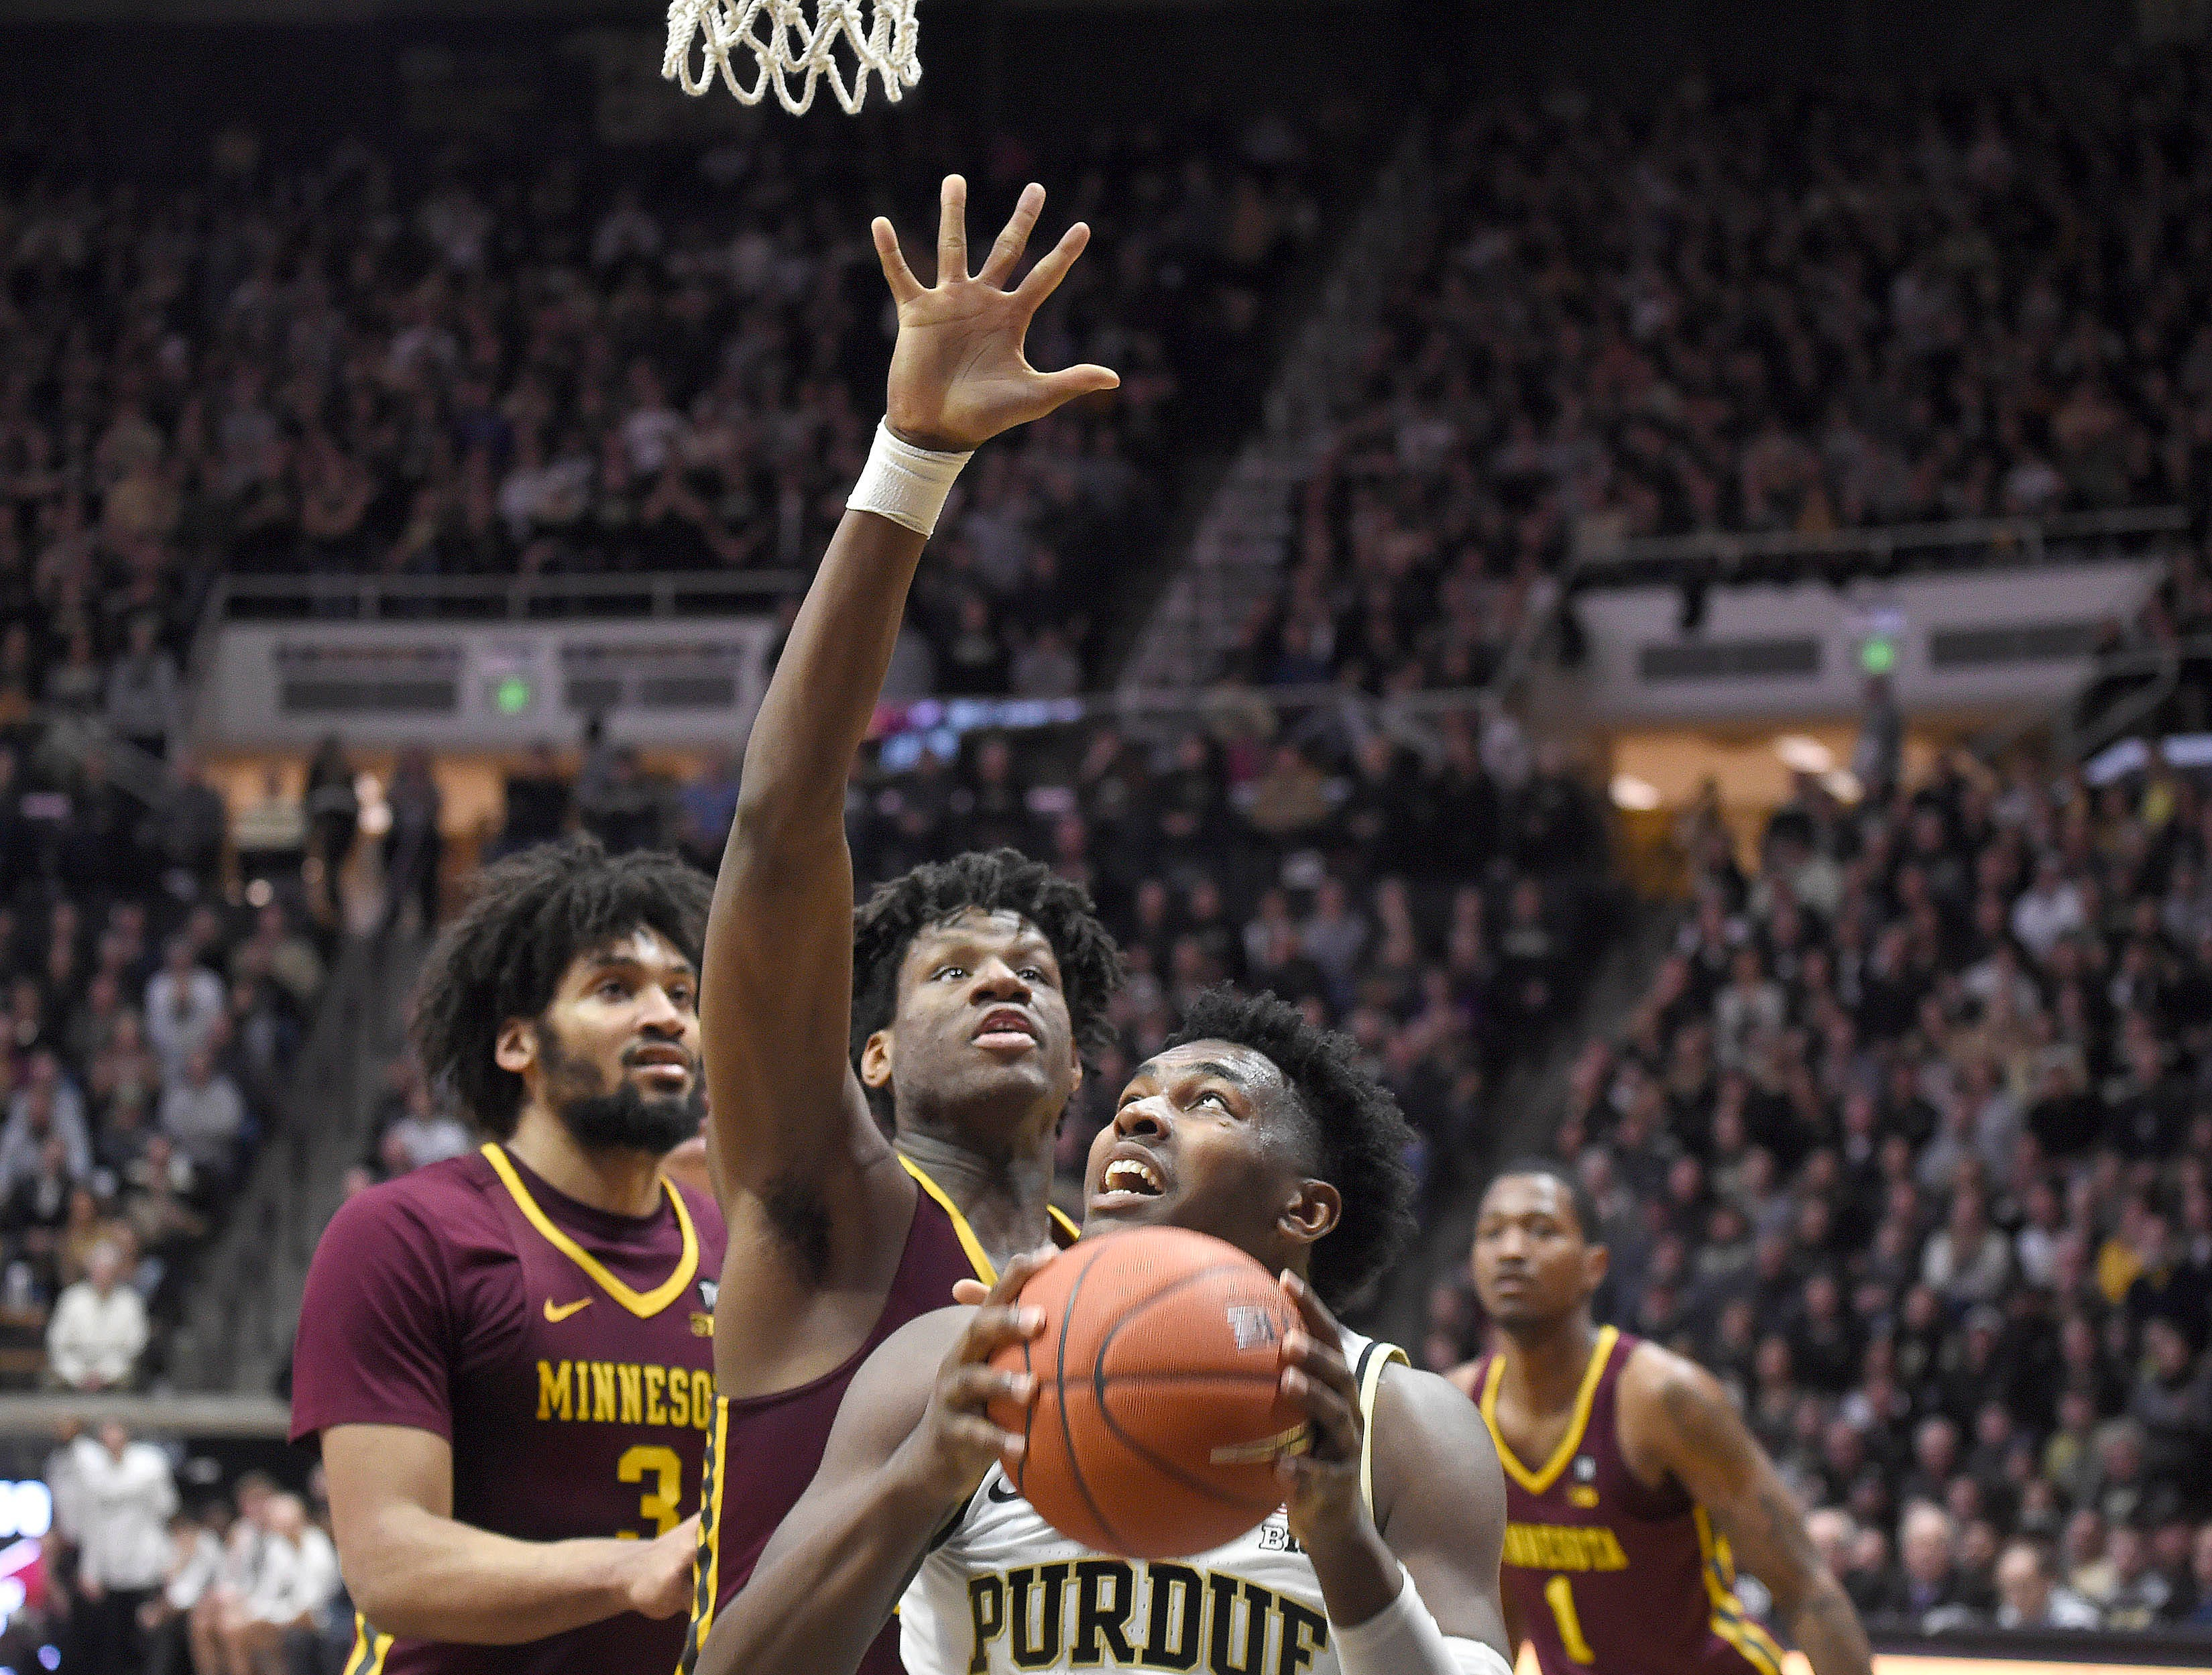 Feb 3, 2019; West Lafayette, IN, USA; Purdue Boilermakers forward Trevion Williams (50) prepares to shoot the ball as Minnesota Golden Gophers center Daniel Oturu (25) defends in the first half at Mackey Arena. Mandatory Credit: Sandra Dukes-USA TODAY Sports